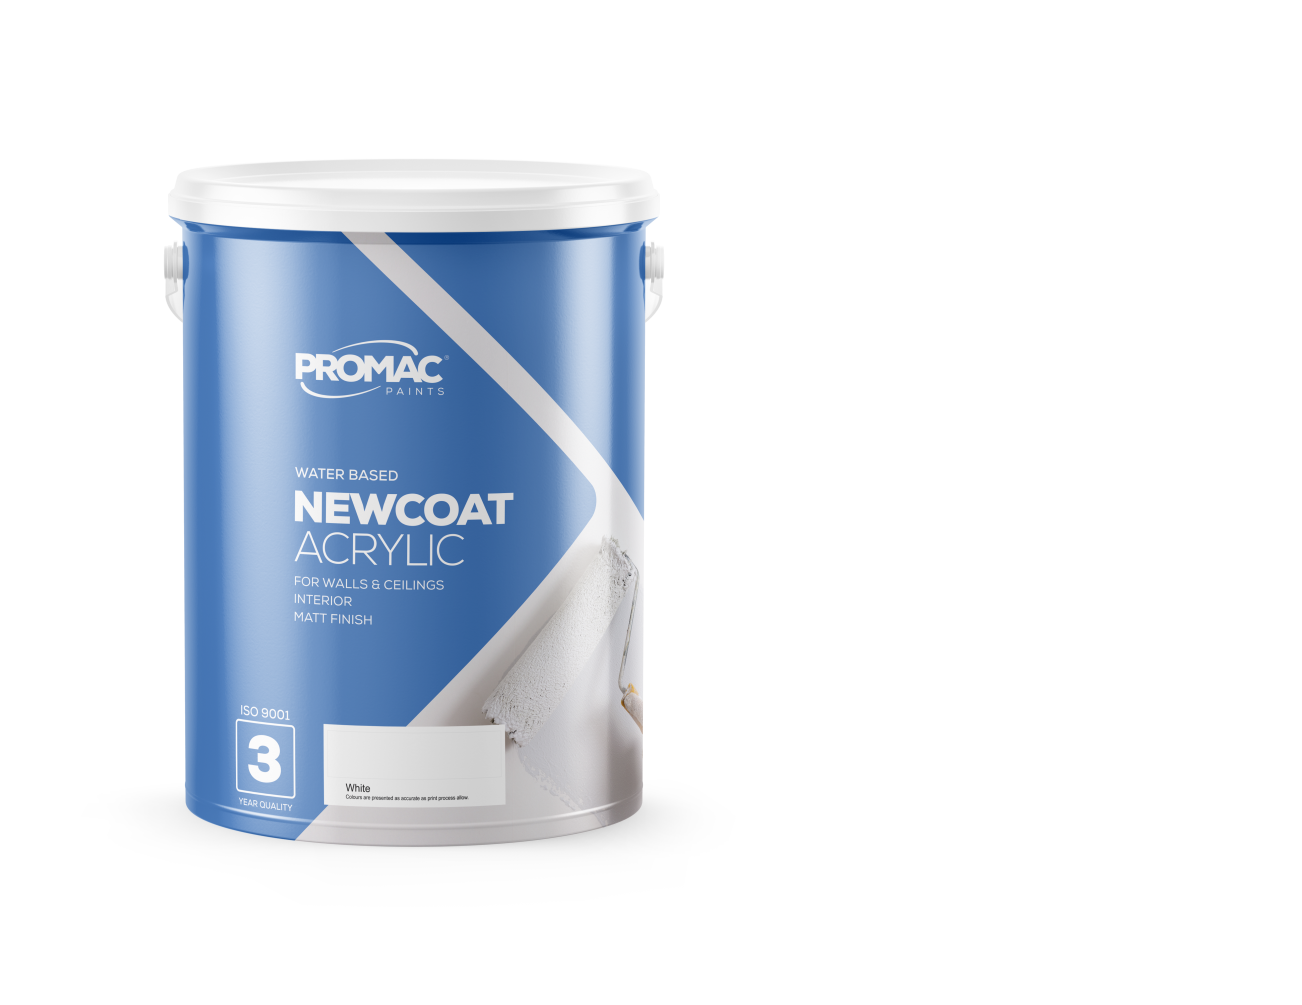 NEWCOATACRYLIC - WATERBASEDPromac New Coat Acrylic is a quality decorative acrylic paint for interior use with excellent hiding power. May be used as a filler coating under medium quality acrylic paints on interior walls and ceilings over suitably prepared surfaces.